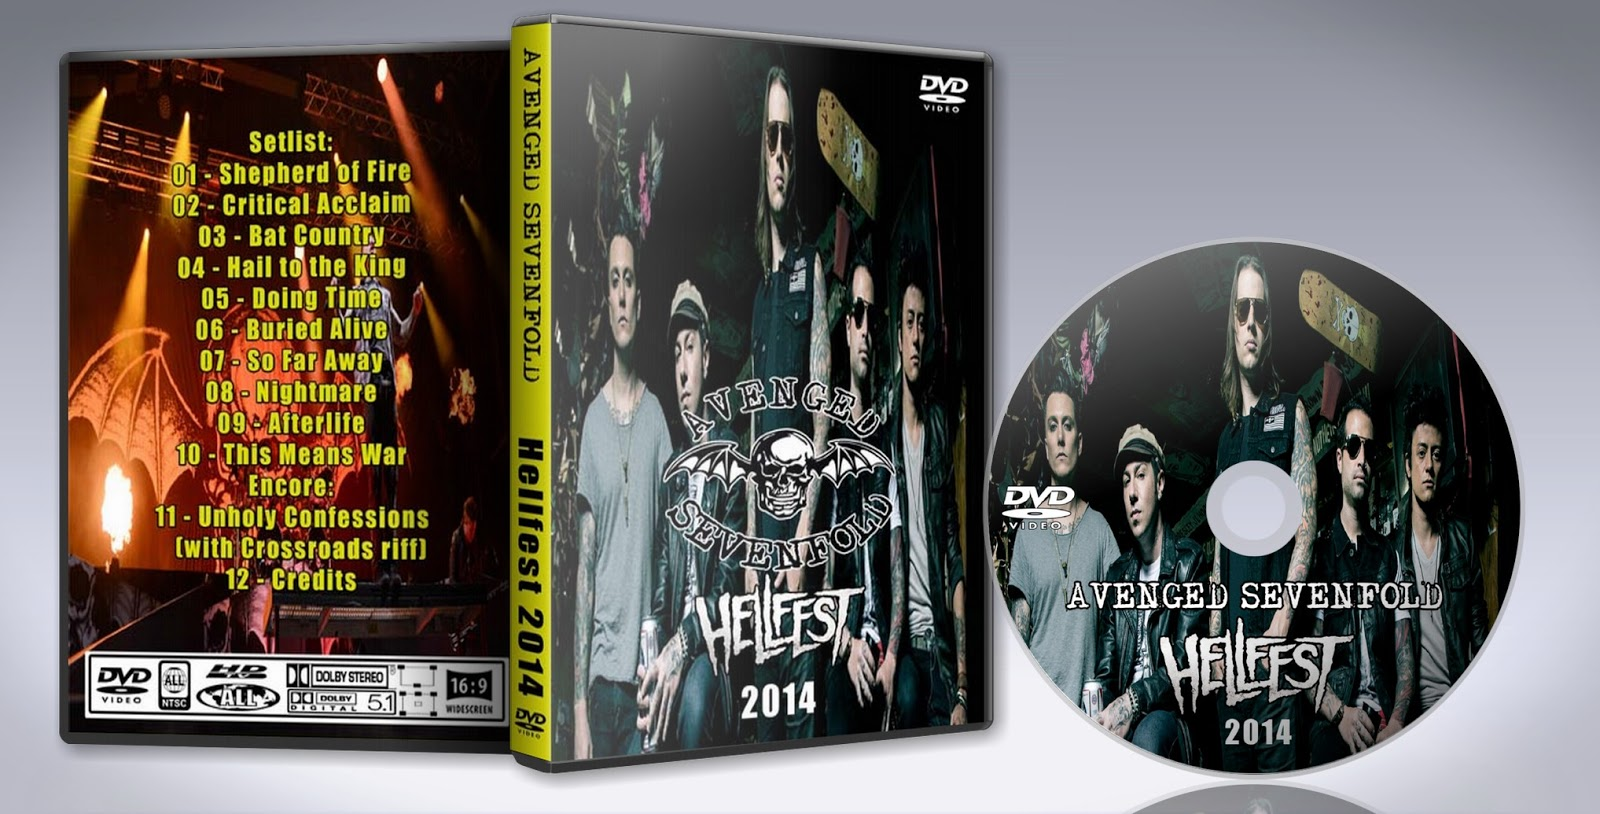 Avenged sevenfold dvd download free